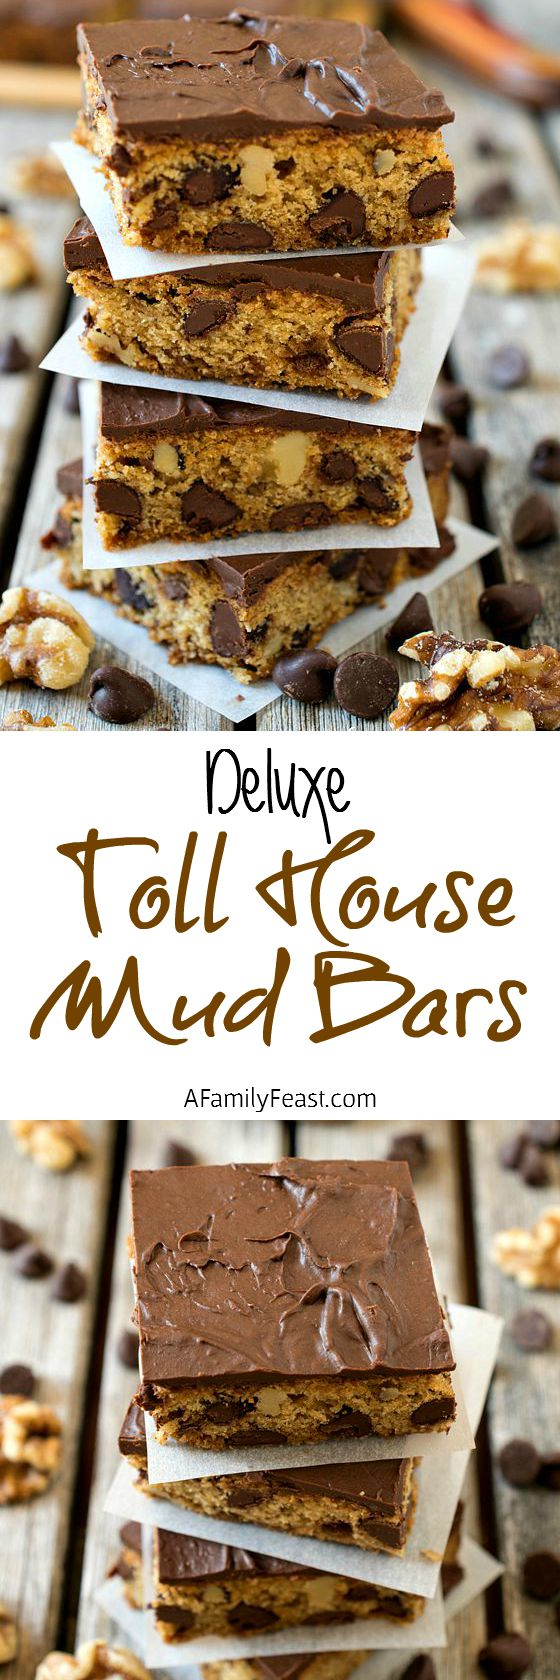 Deluxe Toll House Mud Bars - Chocolate chip and walnut cookie bars frosted with even more melted Toll House semi-sweet chocolate chips!